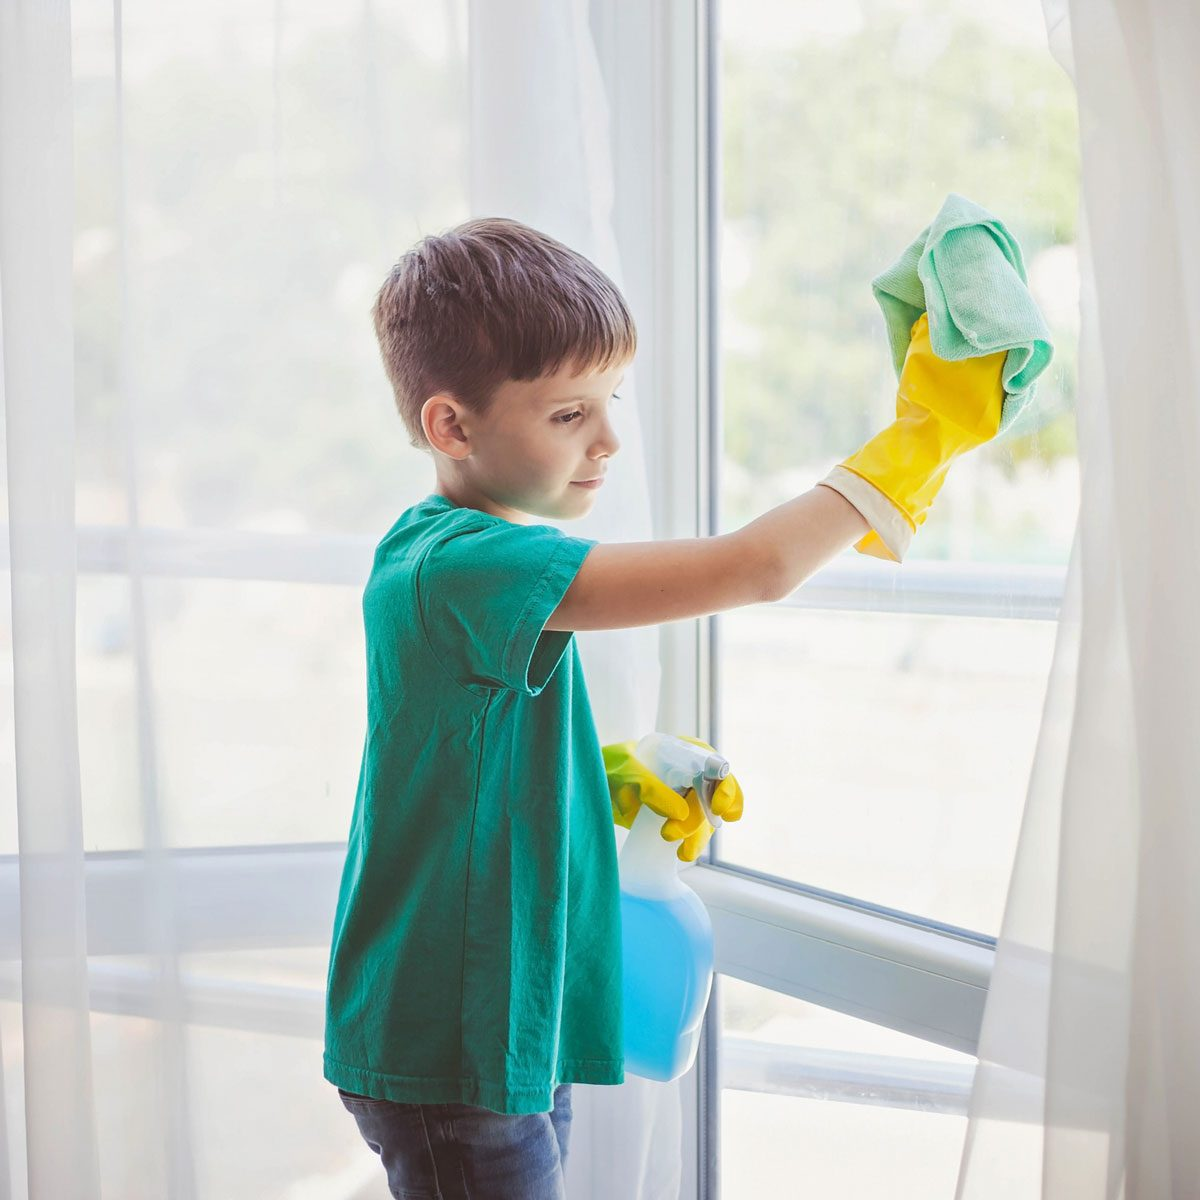 Boy cleaning windows